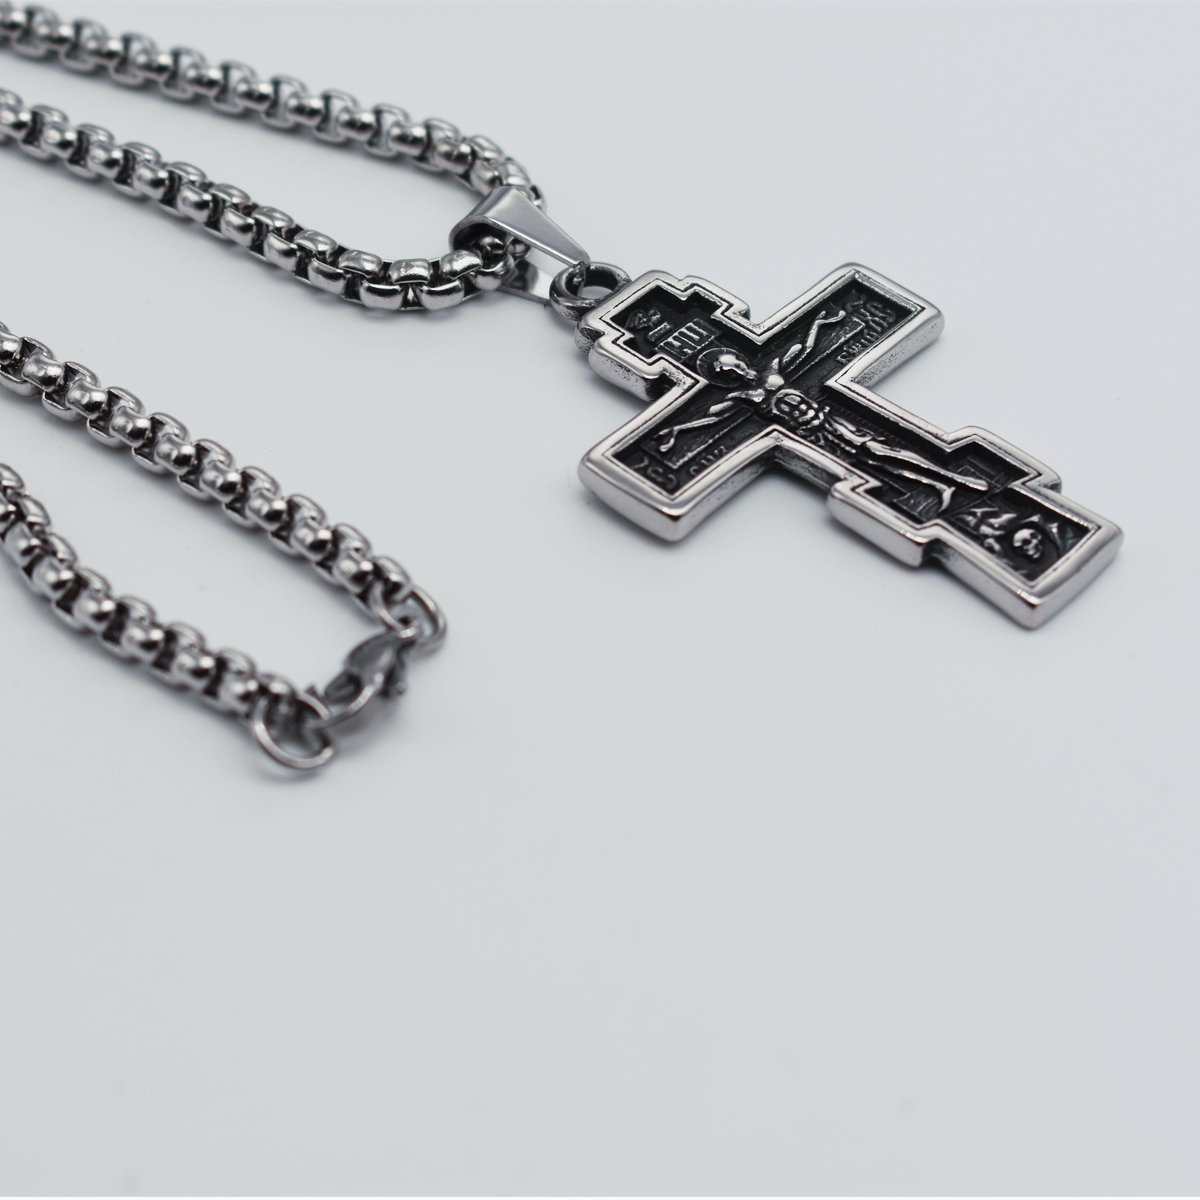 Unisex GANG SHI DAI Stainless Steel Crucifix Necklace with Pendant of Jesus Christ Cross